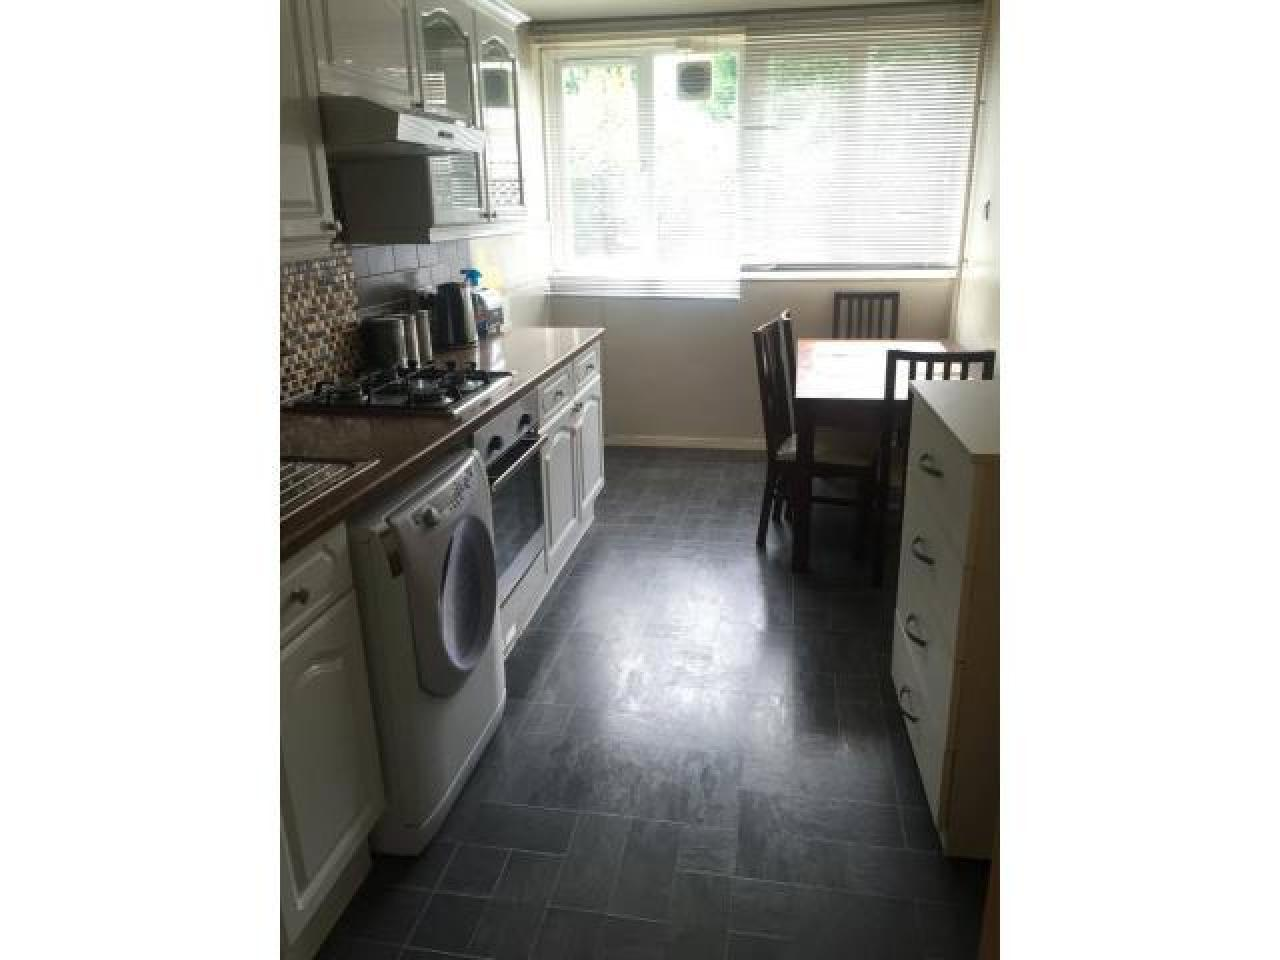 Double комната в аренду, £200/week, all bills included, Shadwell, London - 2